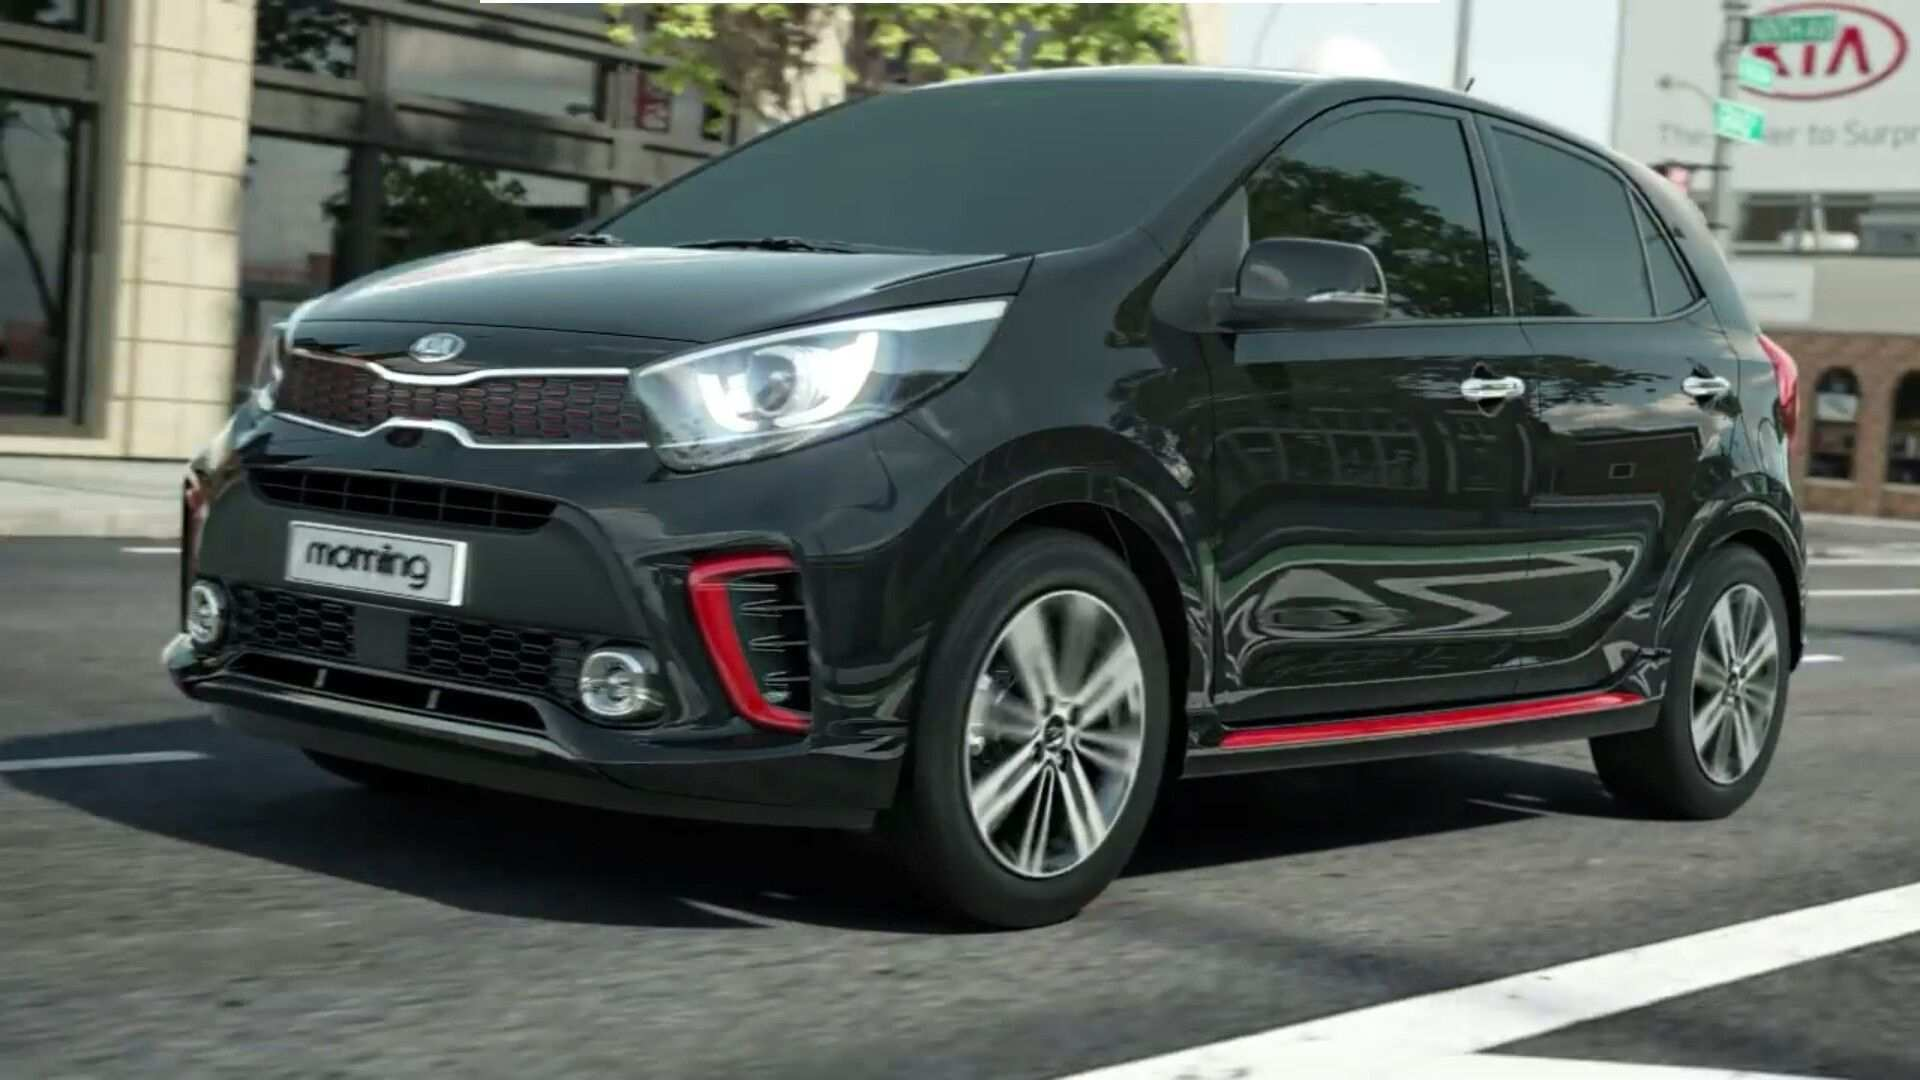 99 Great Kia Picanto 2020 New Concept Pictures with Kia Picanto 2020 New Concept